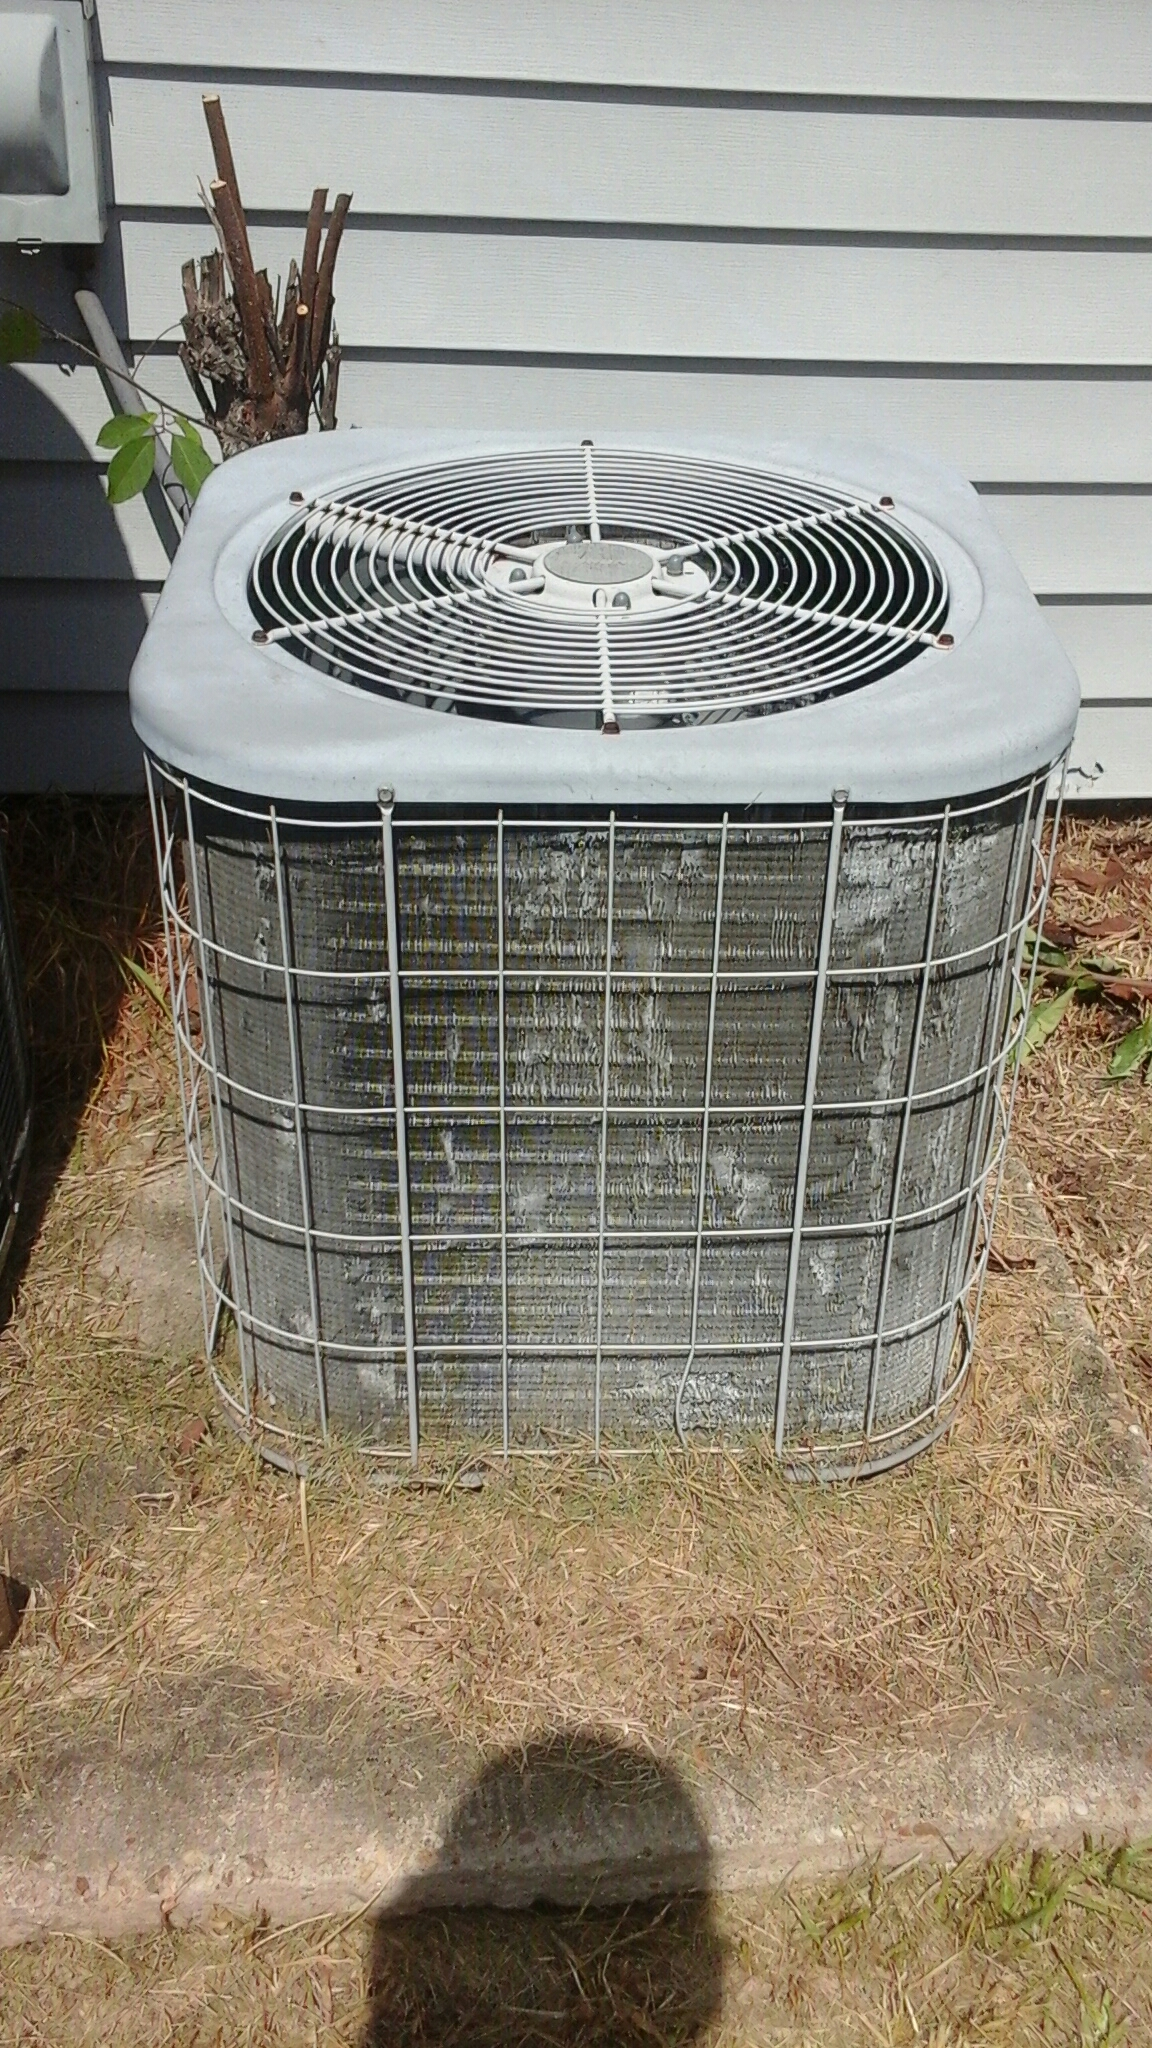 Zachary, LA - 2000 model Amana condenser not coooing. Unit has incorrect fan blade that was replaced by another company.